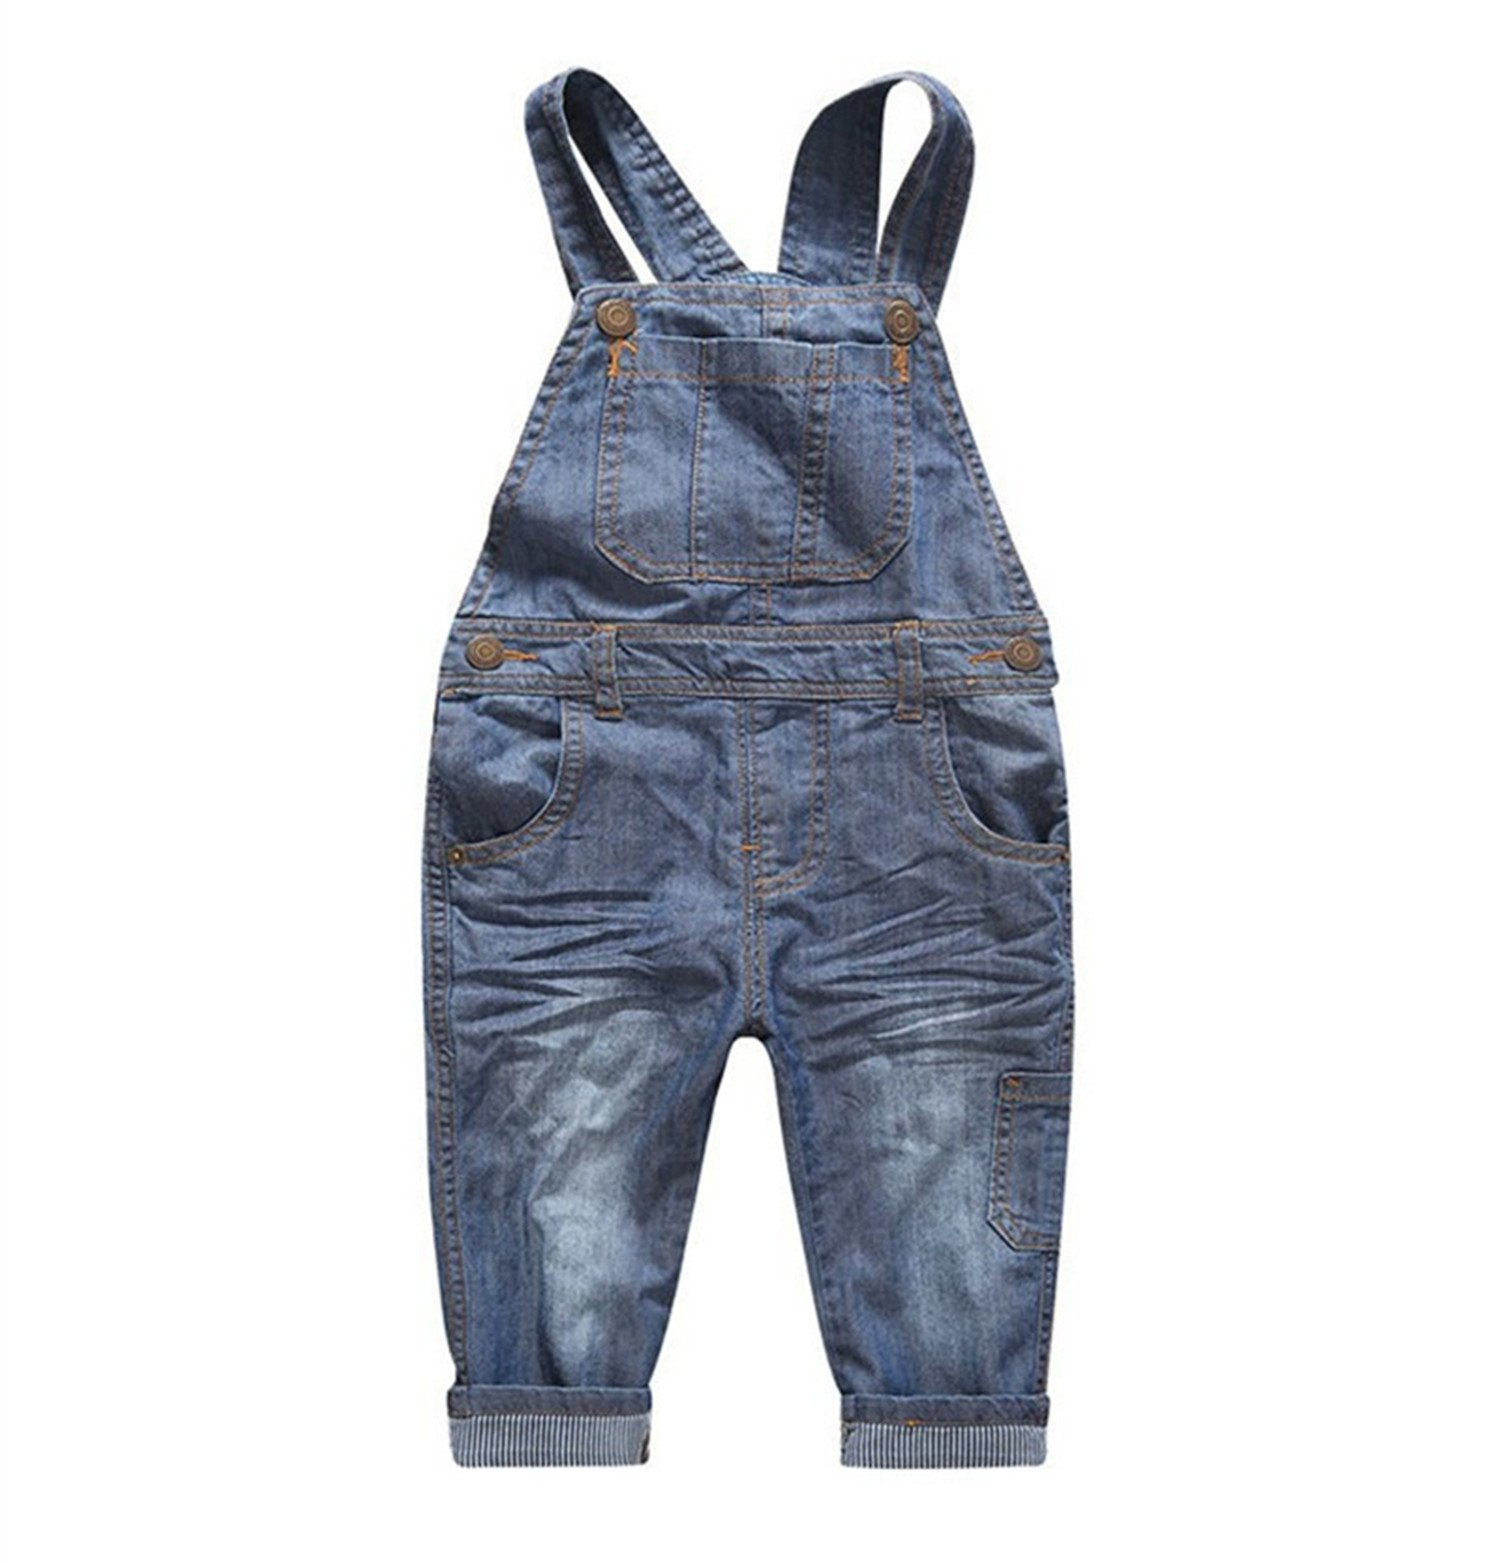 Hoared Denim Overalls Solid Loose Spring Summer Fashion Kids Trousers Overalls Casual Pants Blue 3T